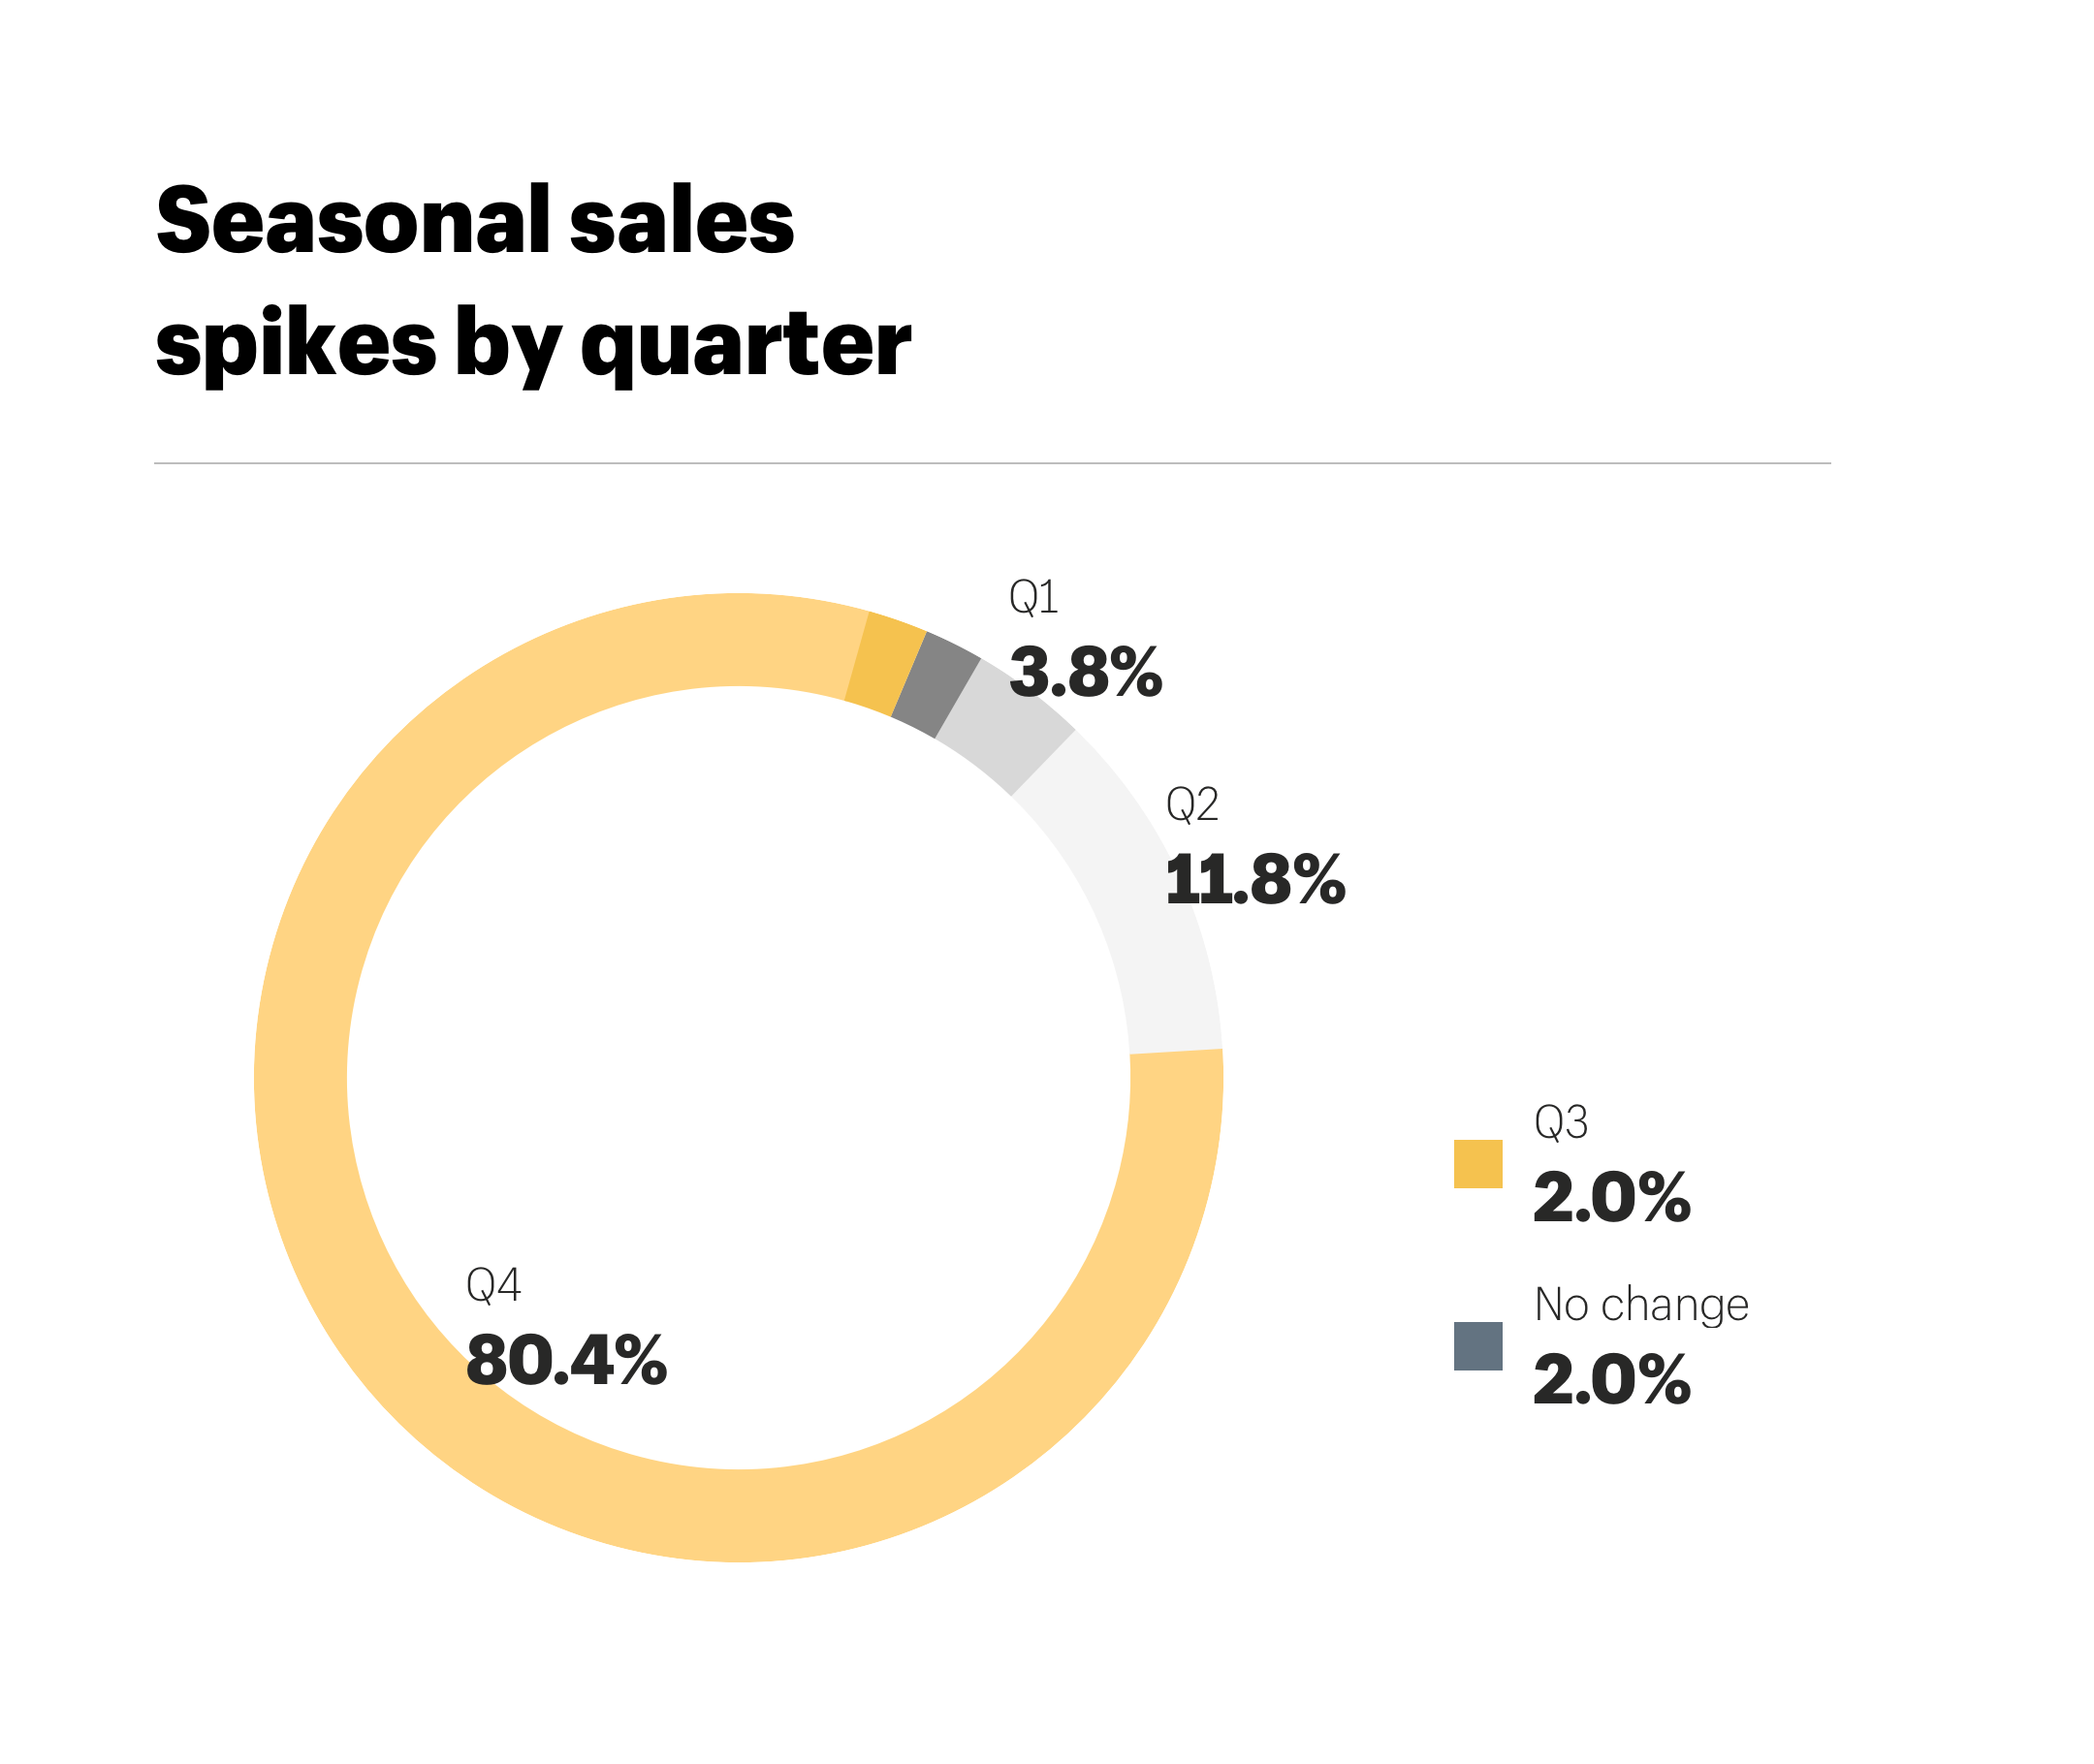 Seasonal sales spikes by quarter